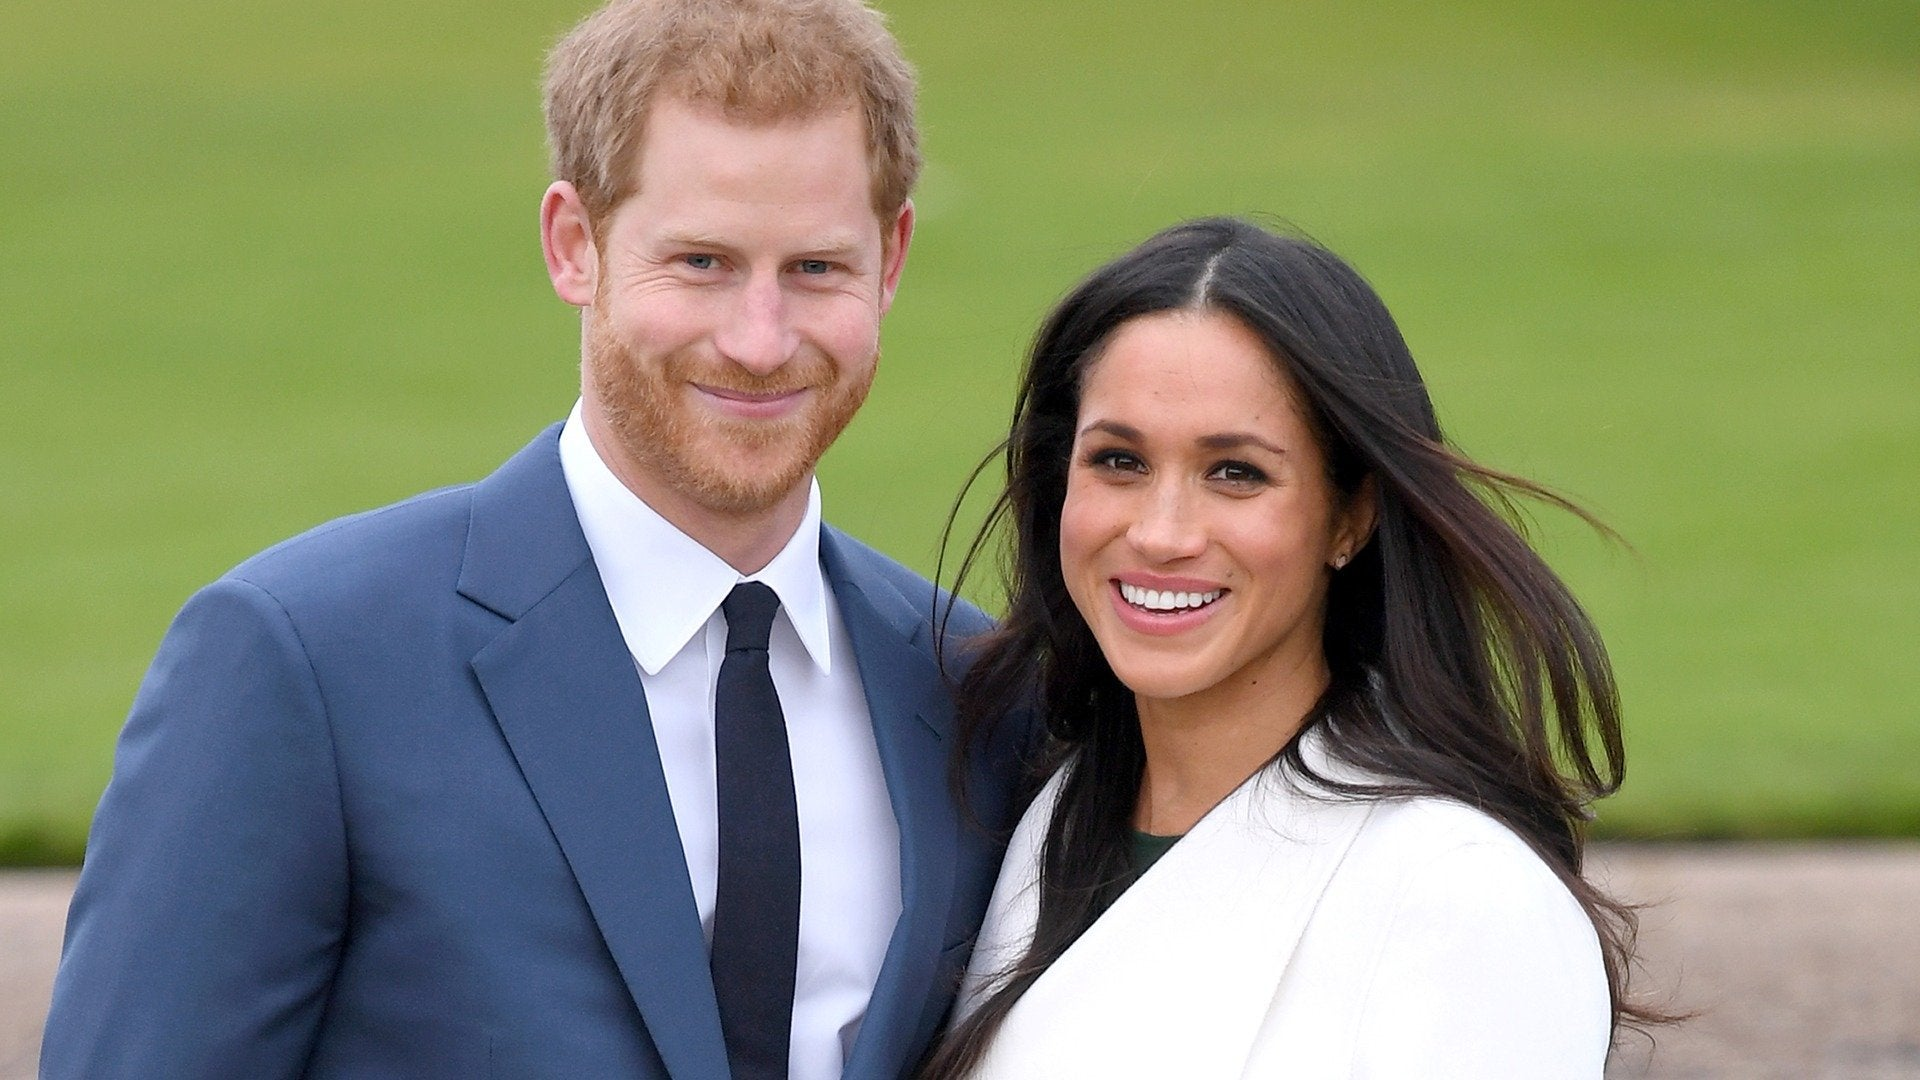 The Royal Wedding: Harry and Meghan